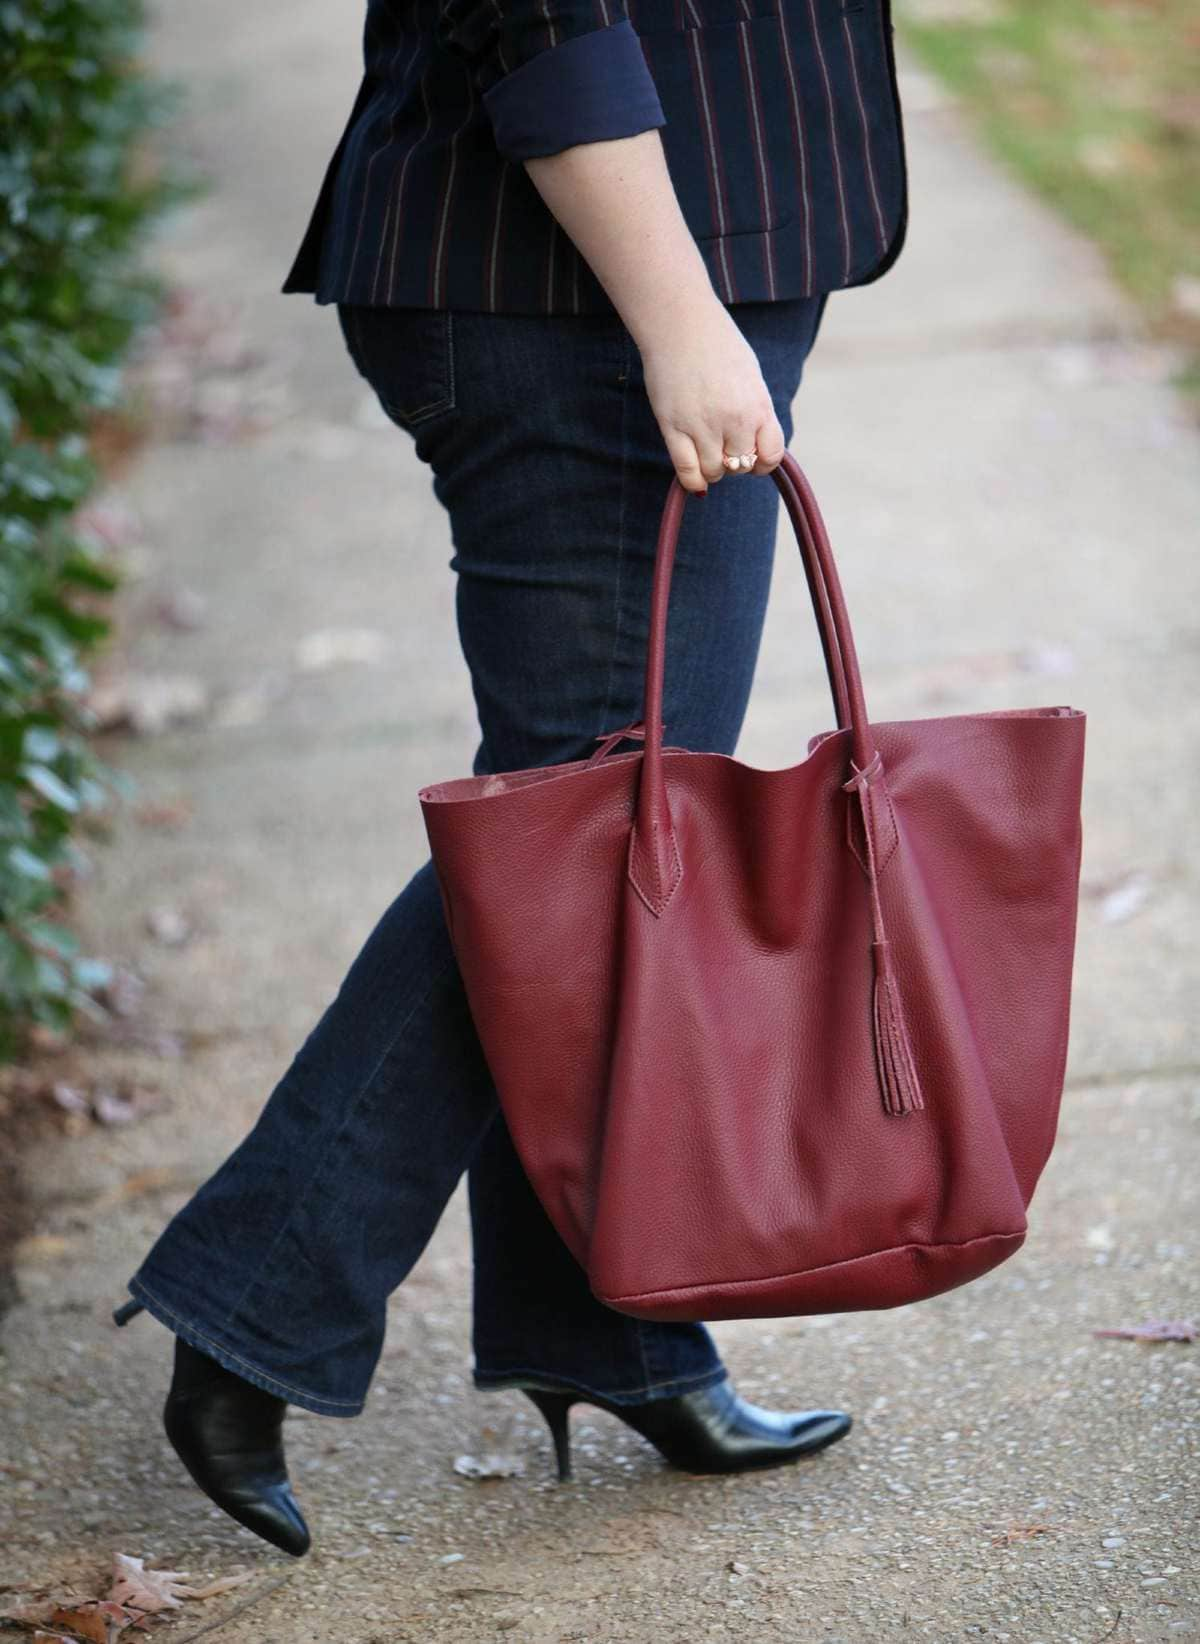 ADORA Bags Tote in Limited Editon Marsala leather in time for the holidays, only at Wardrobe Oxygen